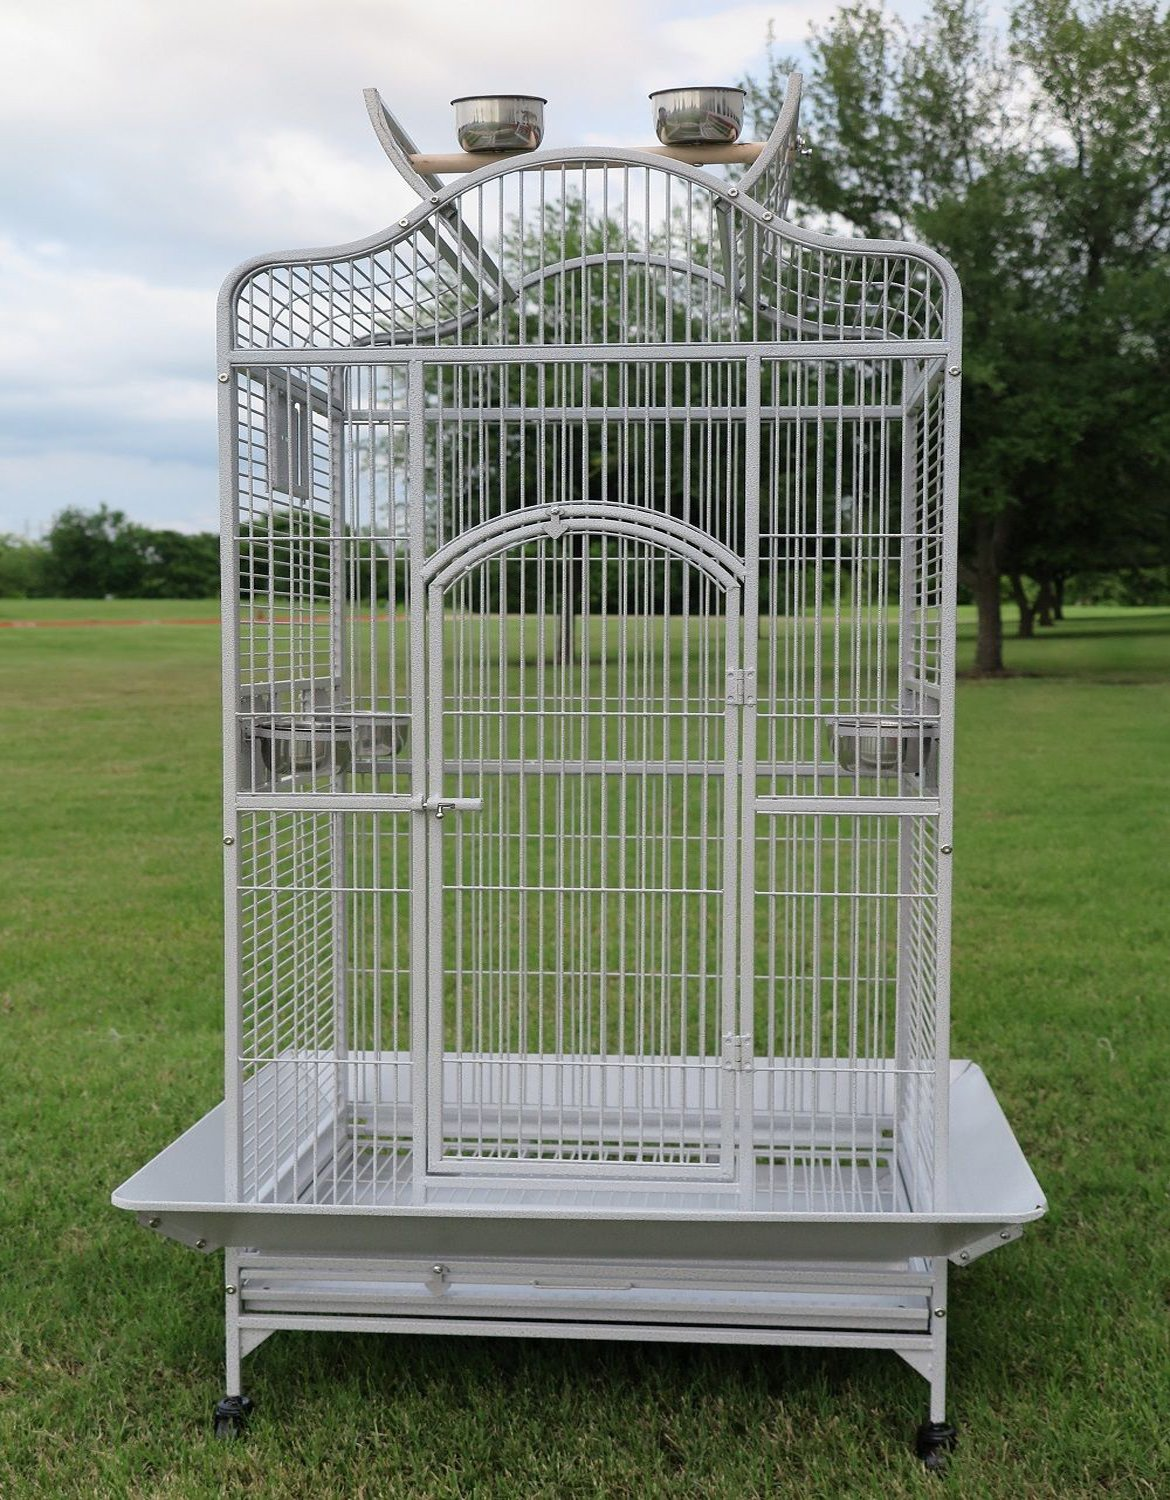 New Large Wrought Iron Open/Close Play Top Bird Parrot Cage, Include Metal Seed Guard Solid Metal Feeder Nest Doors Overall Dimensions: 35.25'' Wx29.5''x62''H(with Seed Skirt) (28Wx22Lx59H, White Vein)